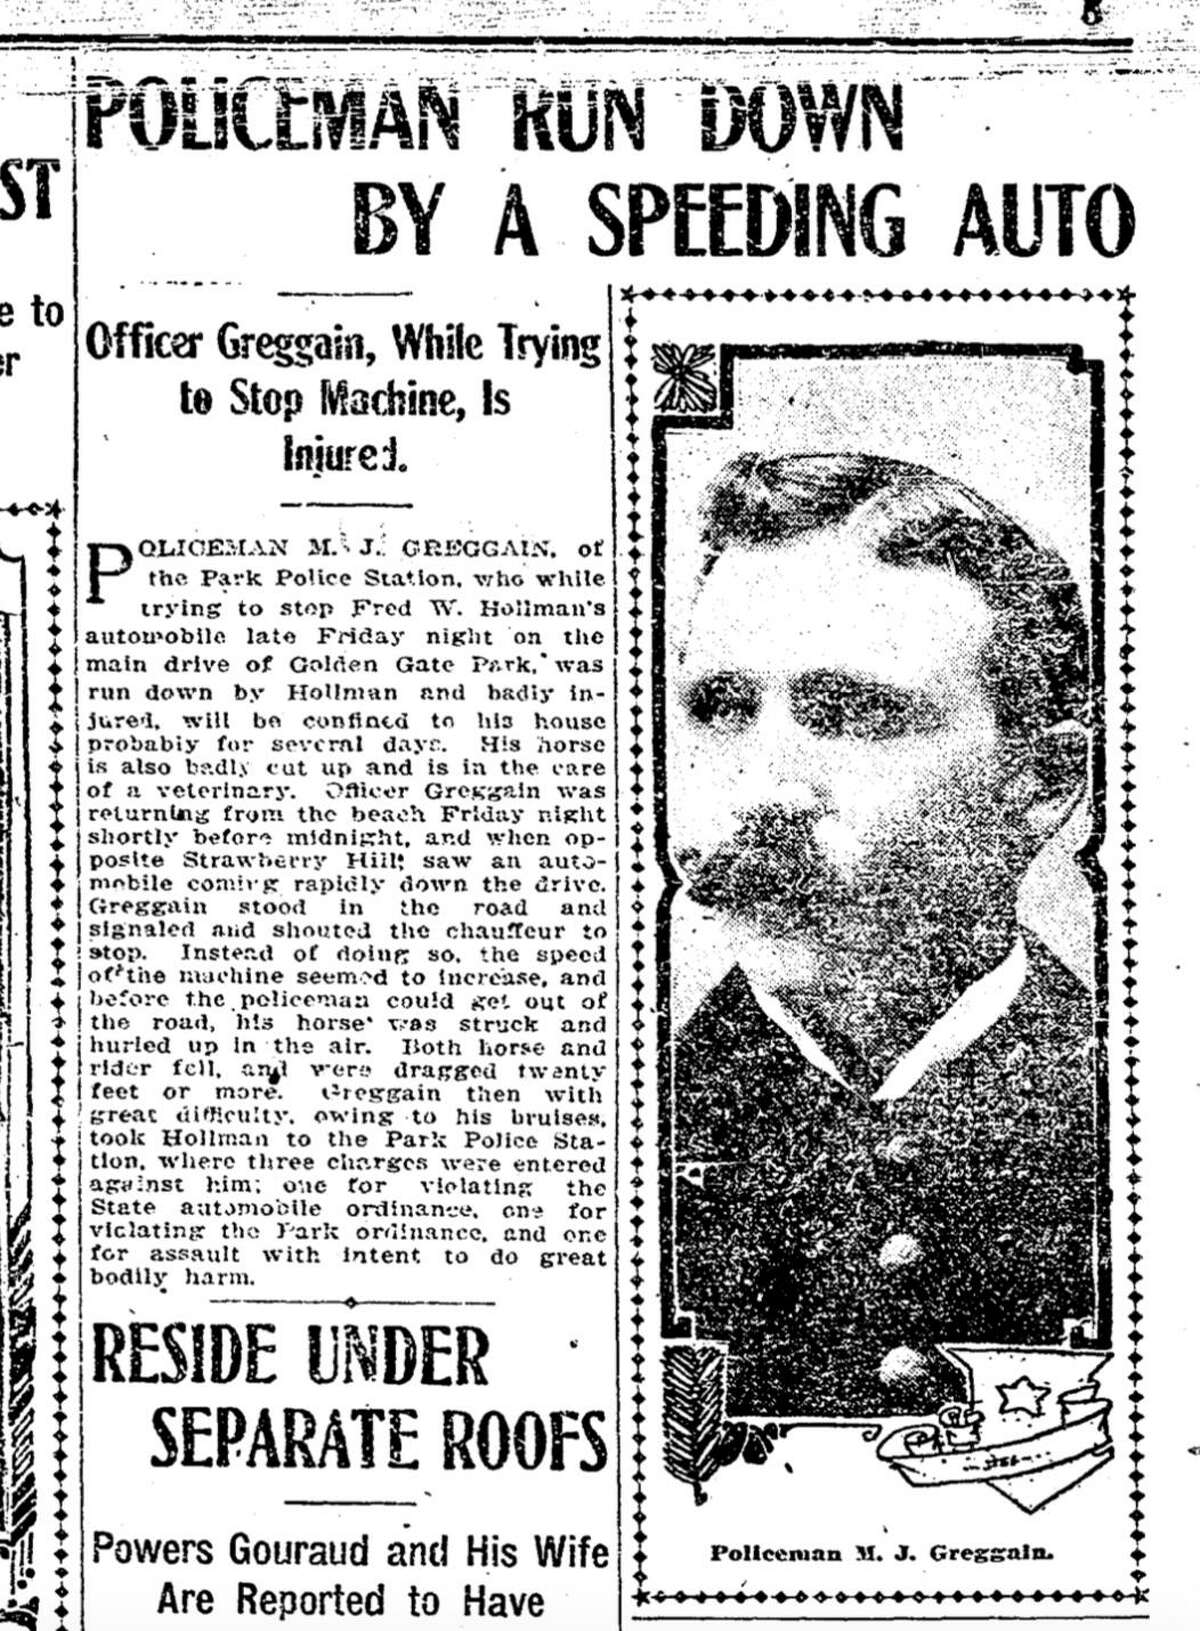 The Chronicle in 1907 covered a Golden Gate Park policeman who was hit by a car. His horse was also injured.